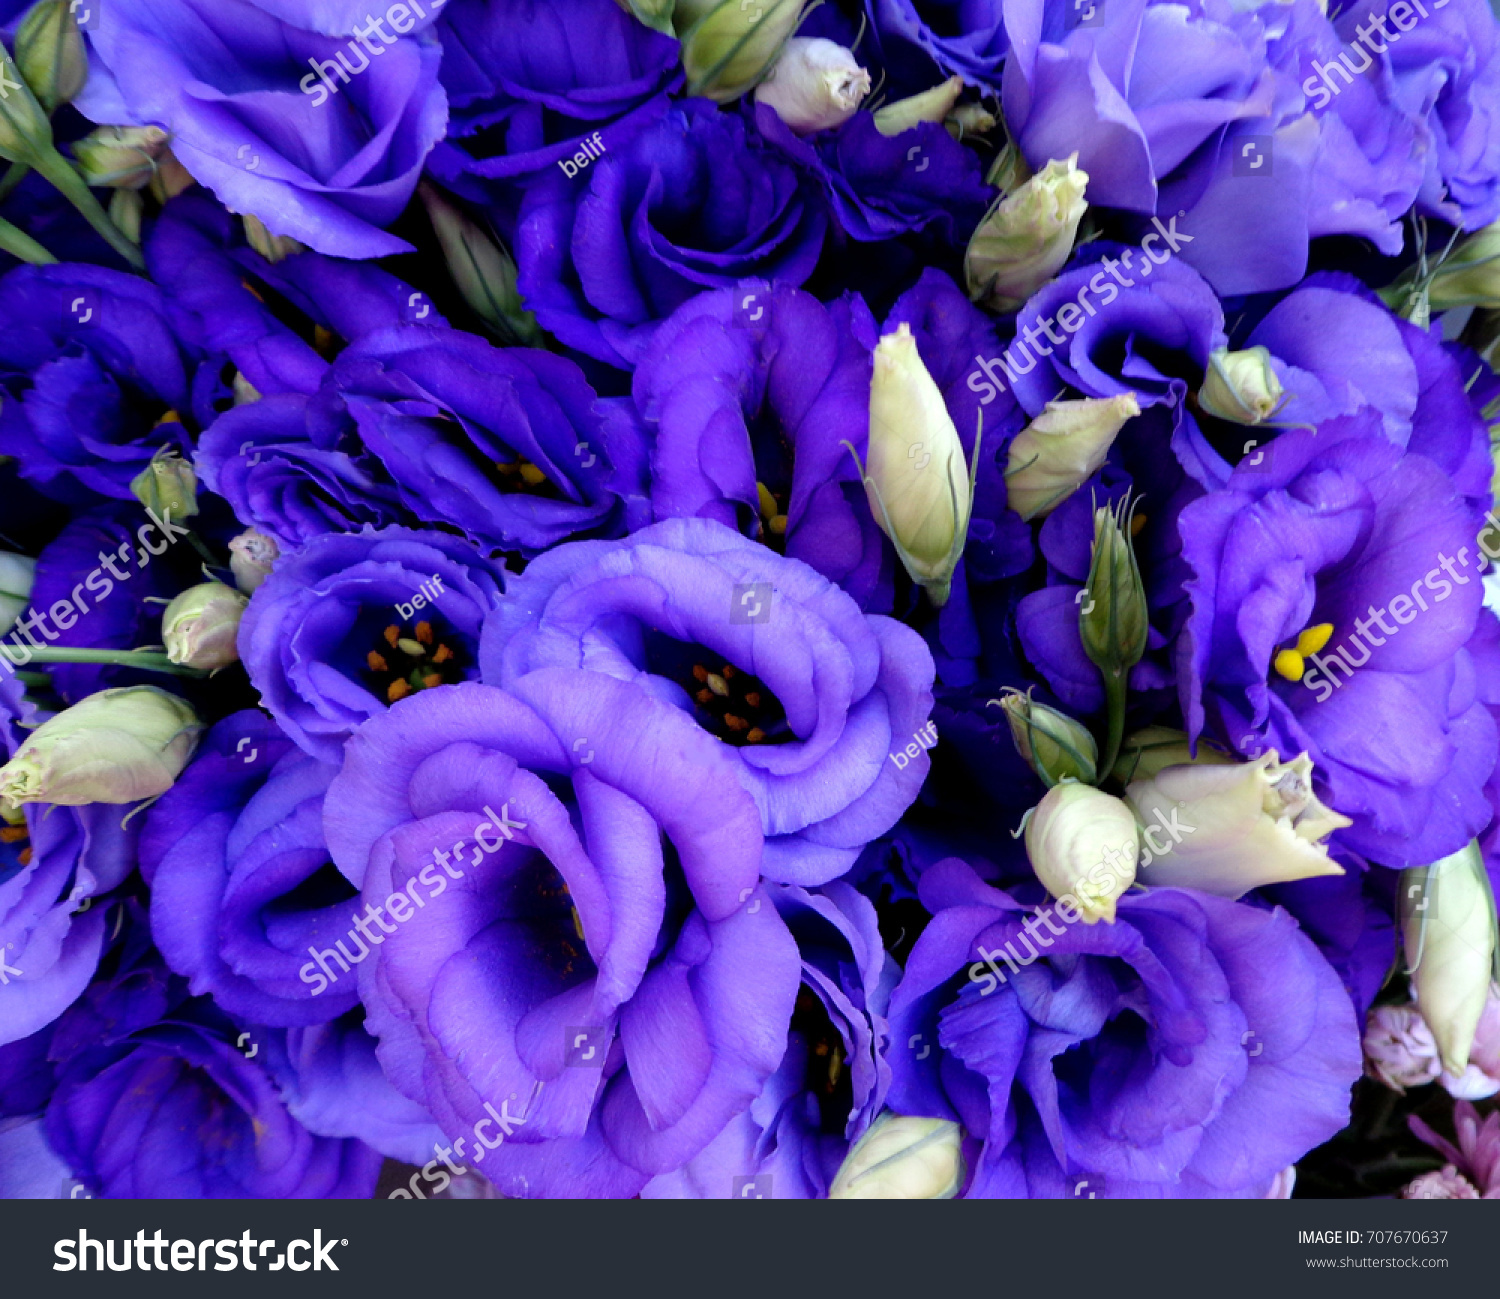 Blue purple lisianthus flowers bouquet stock photo edit now blue and purple lisianthus flowers bouquet izmirmasajfo